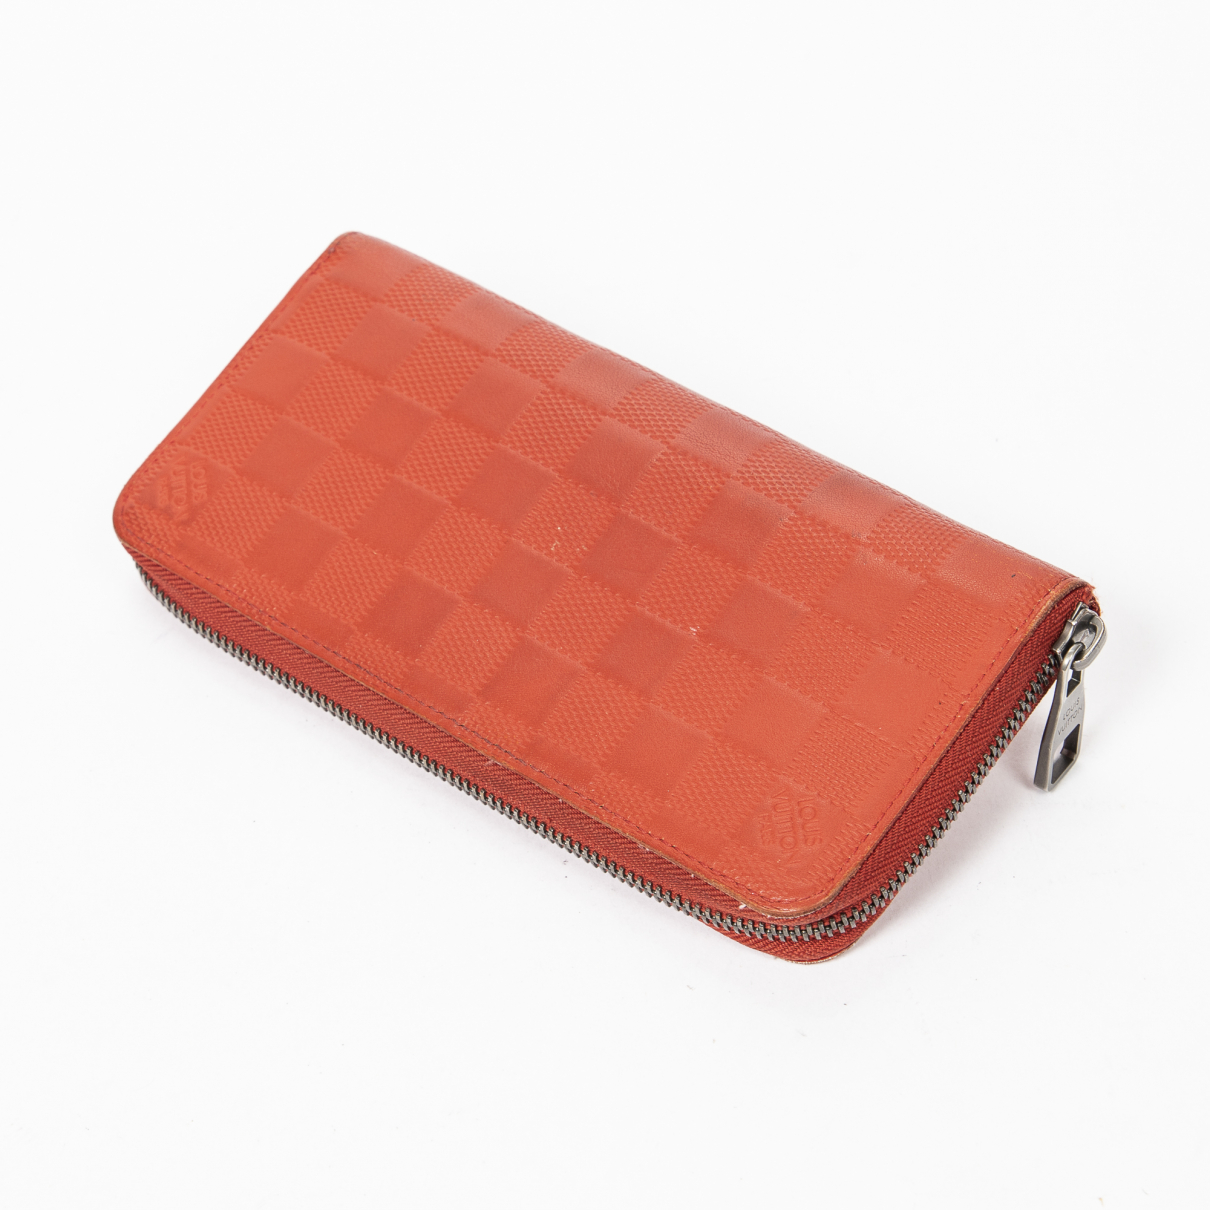 Louis Vuitton \N Red Leather wallet for Women \N